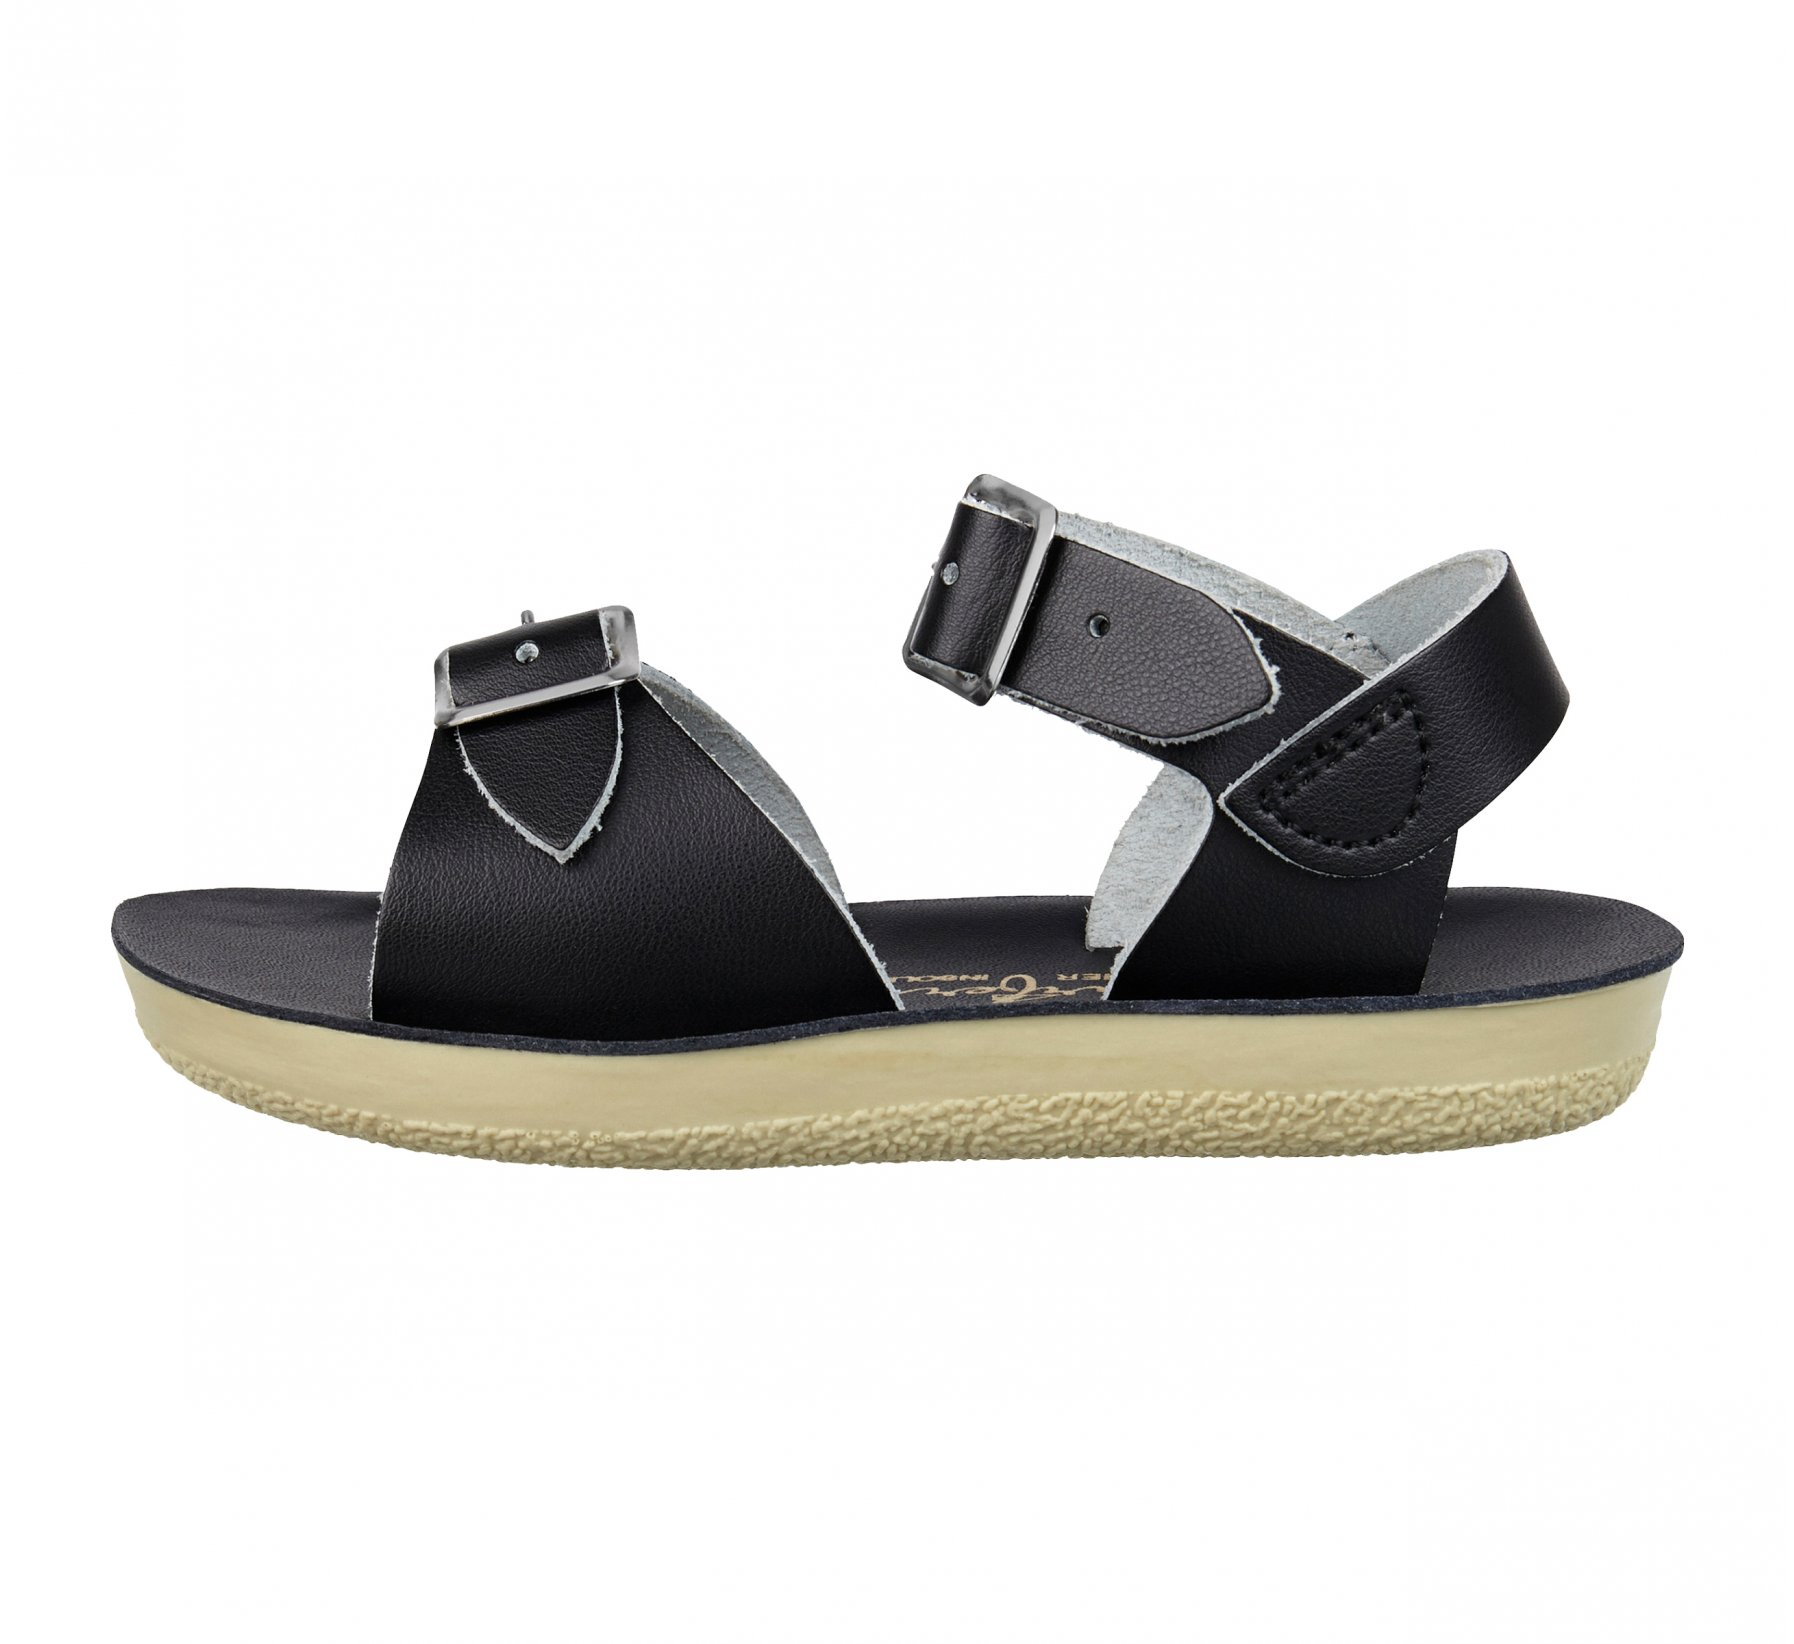 Surfer Noir - Salt Water Sandals